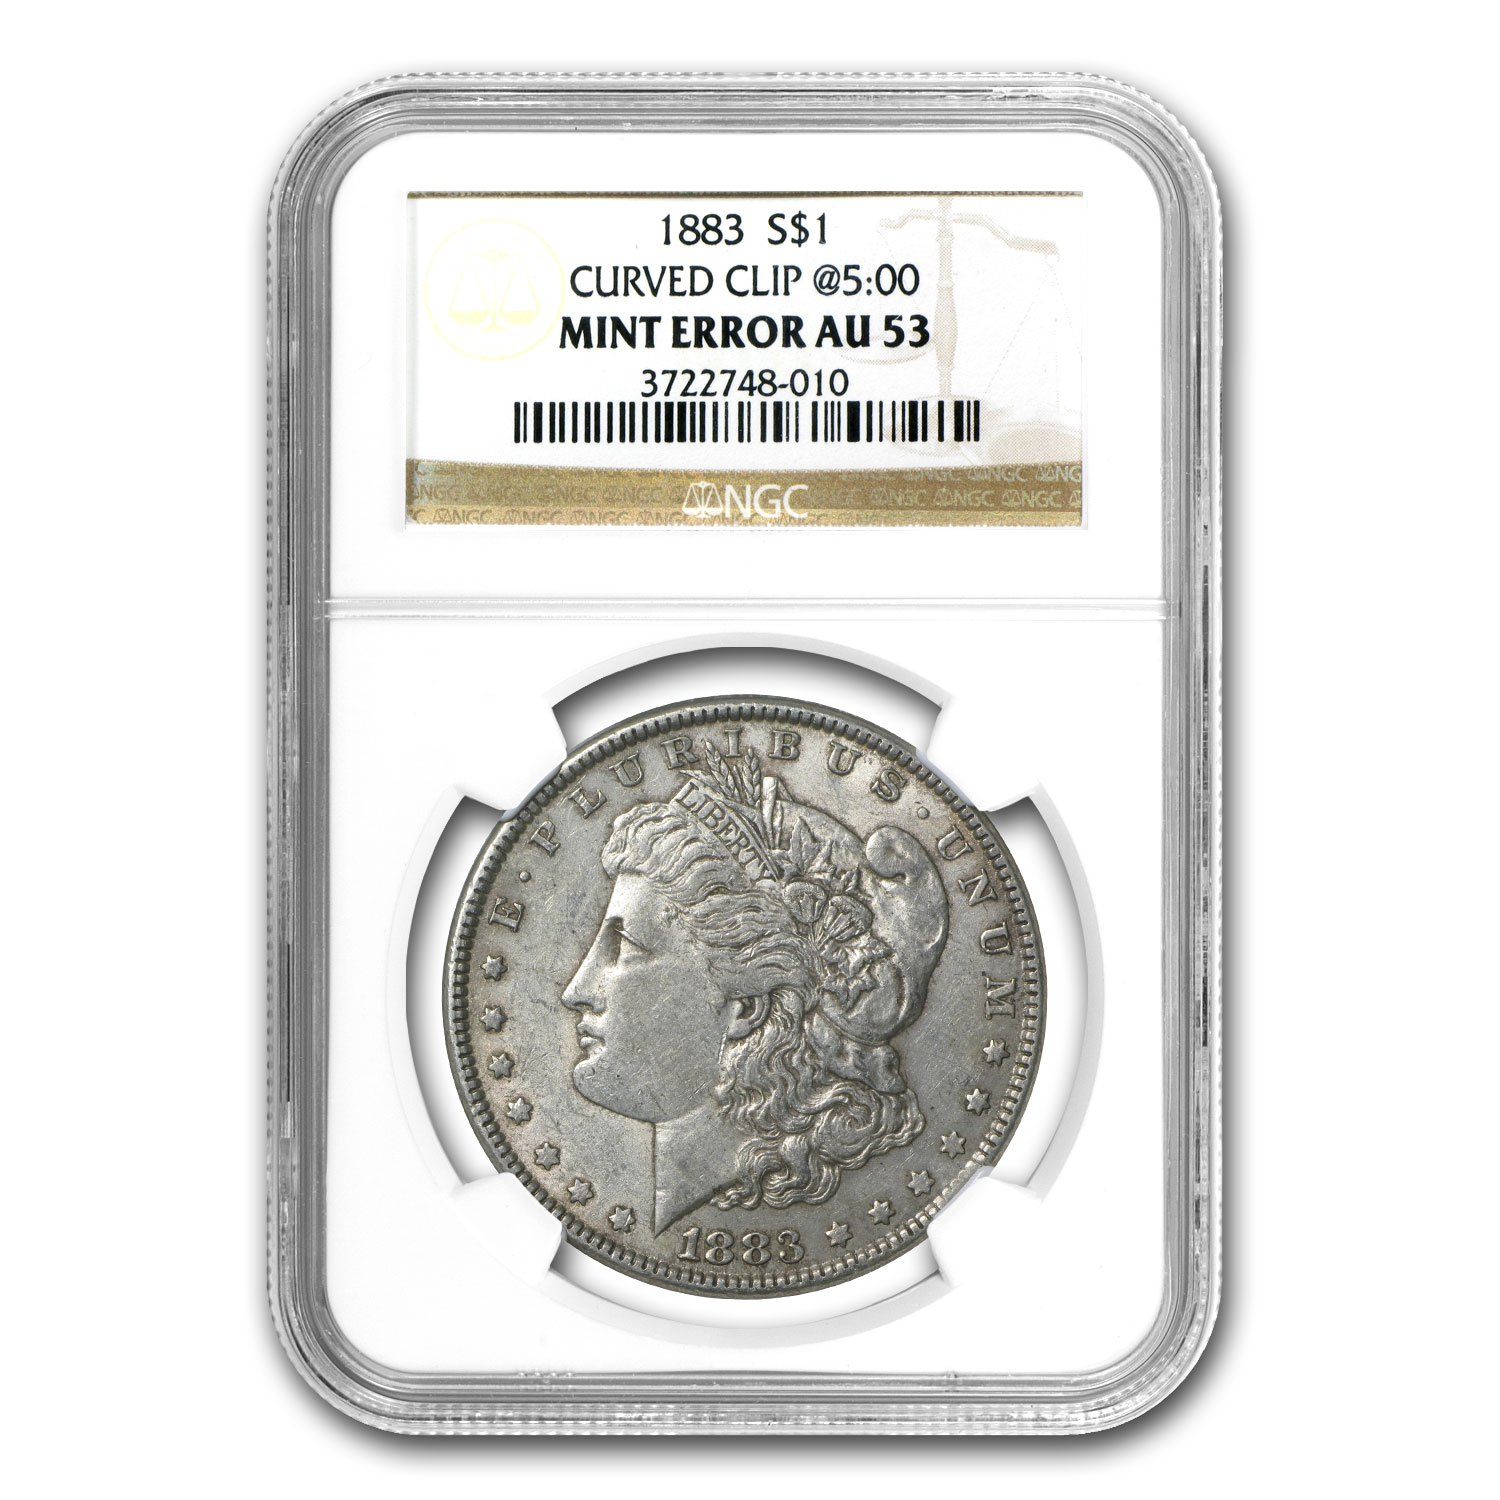 1883 Morgan Dollar AU-53 NGC (Curved Clip Mint Error)